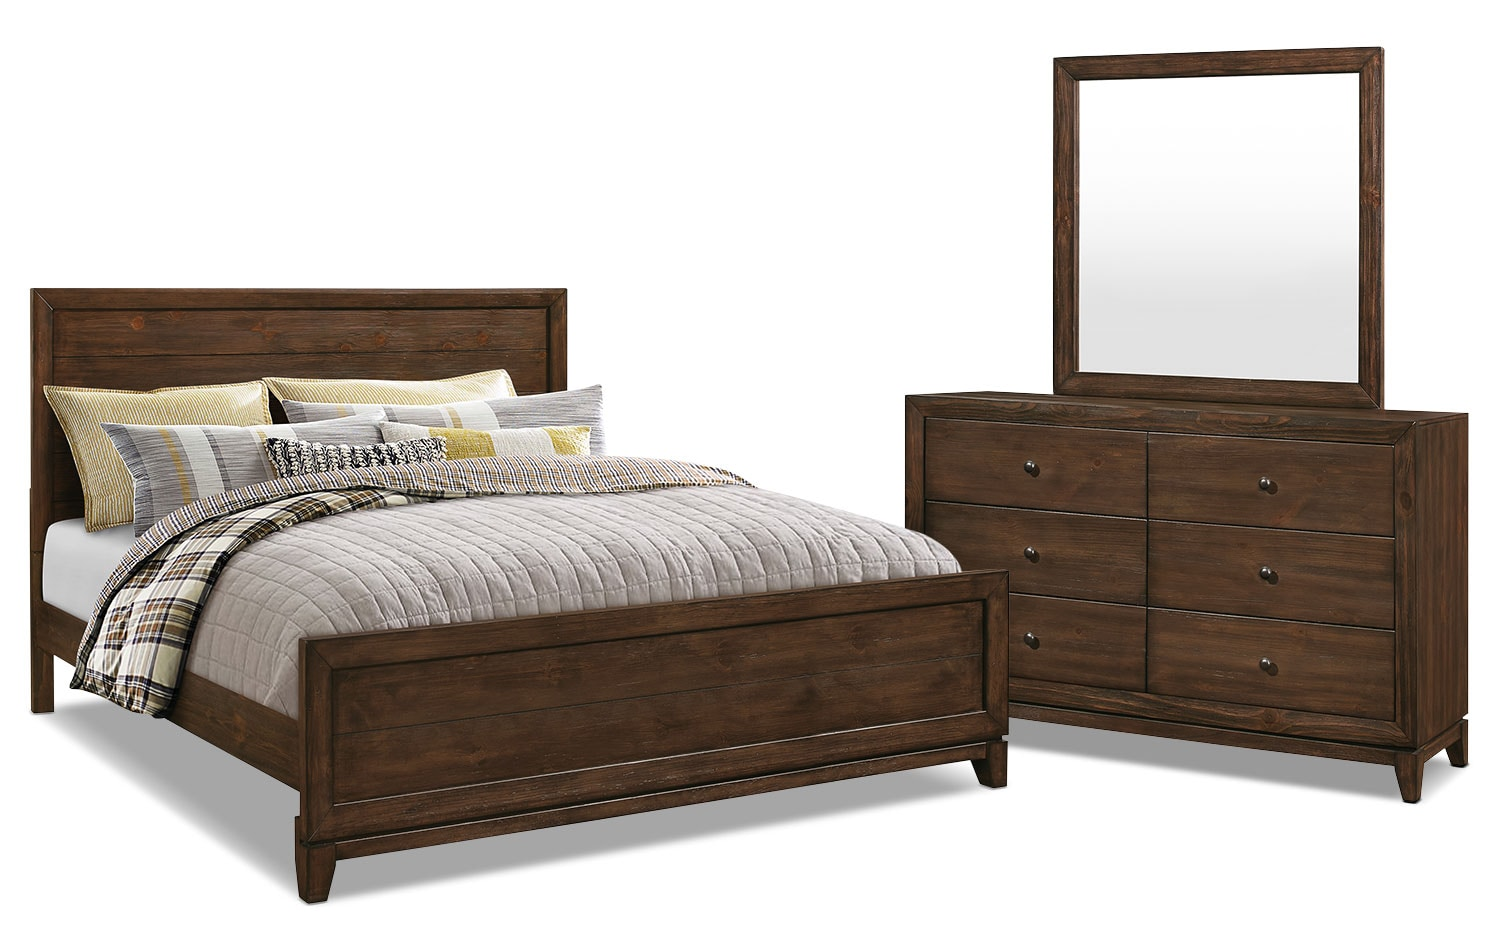 Bedroom Furniture - Tacoma 5-Piece King Bedroom Package